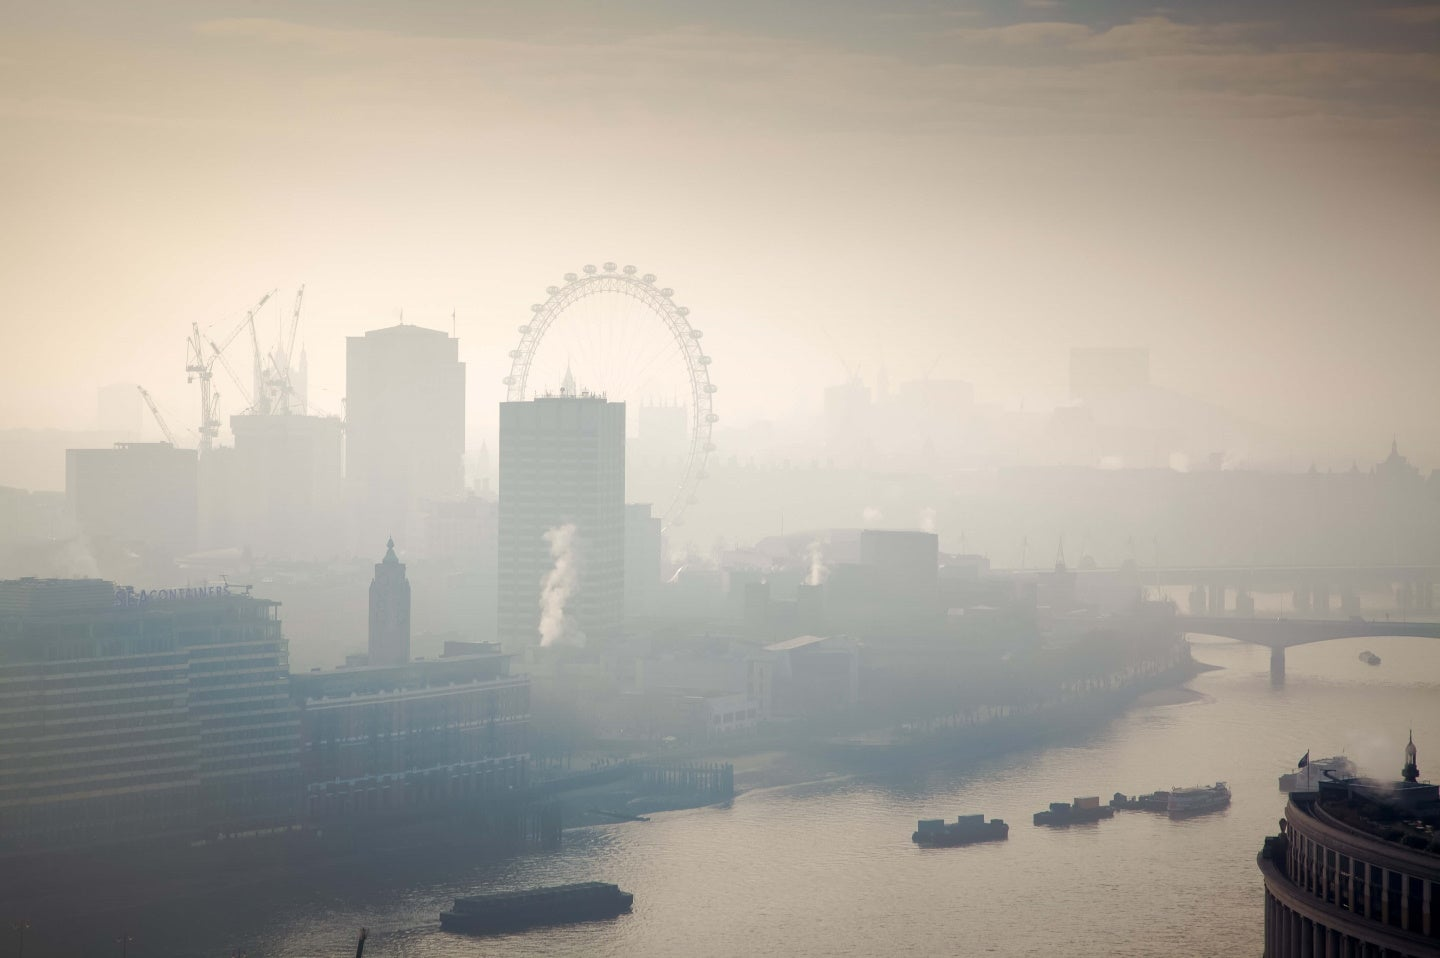 a picture of the pollution in london